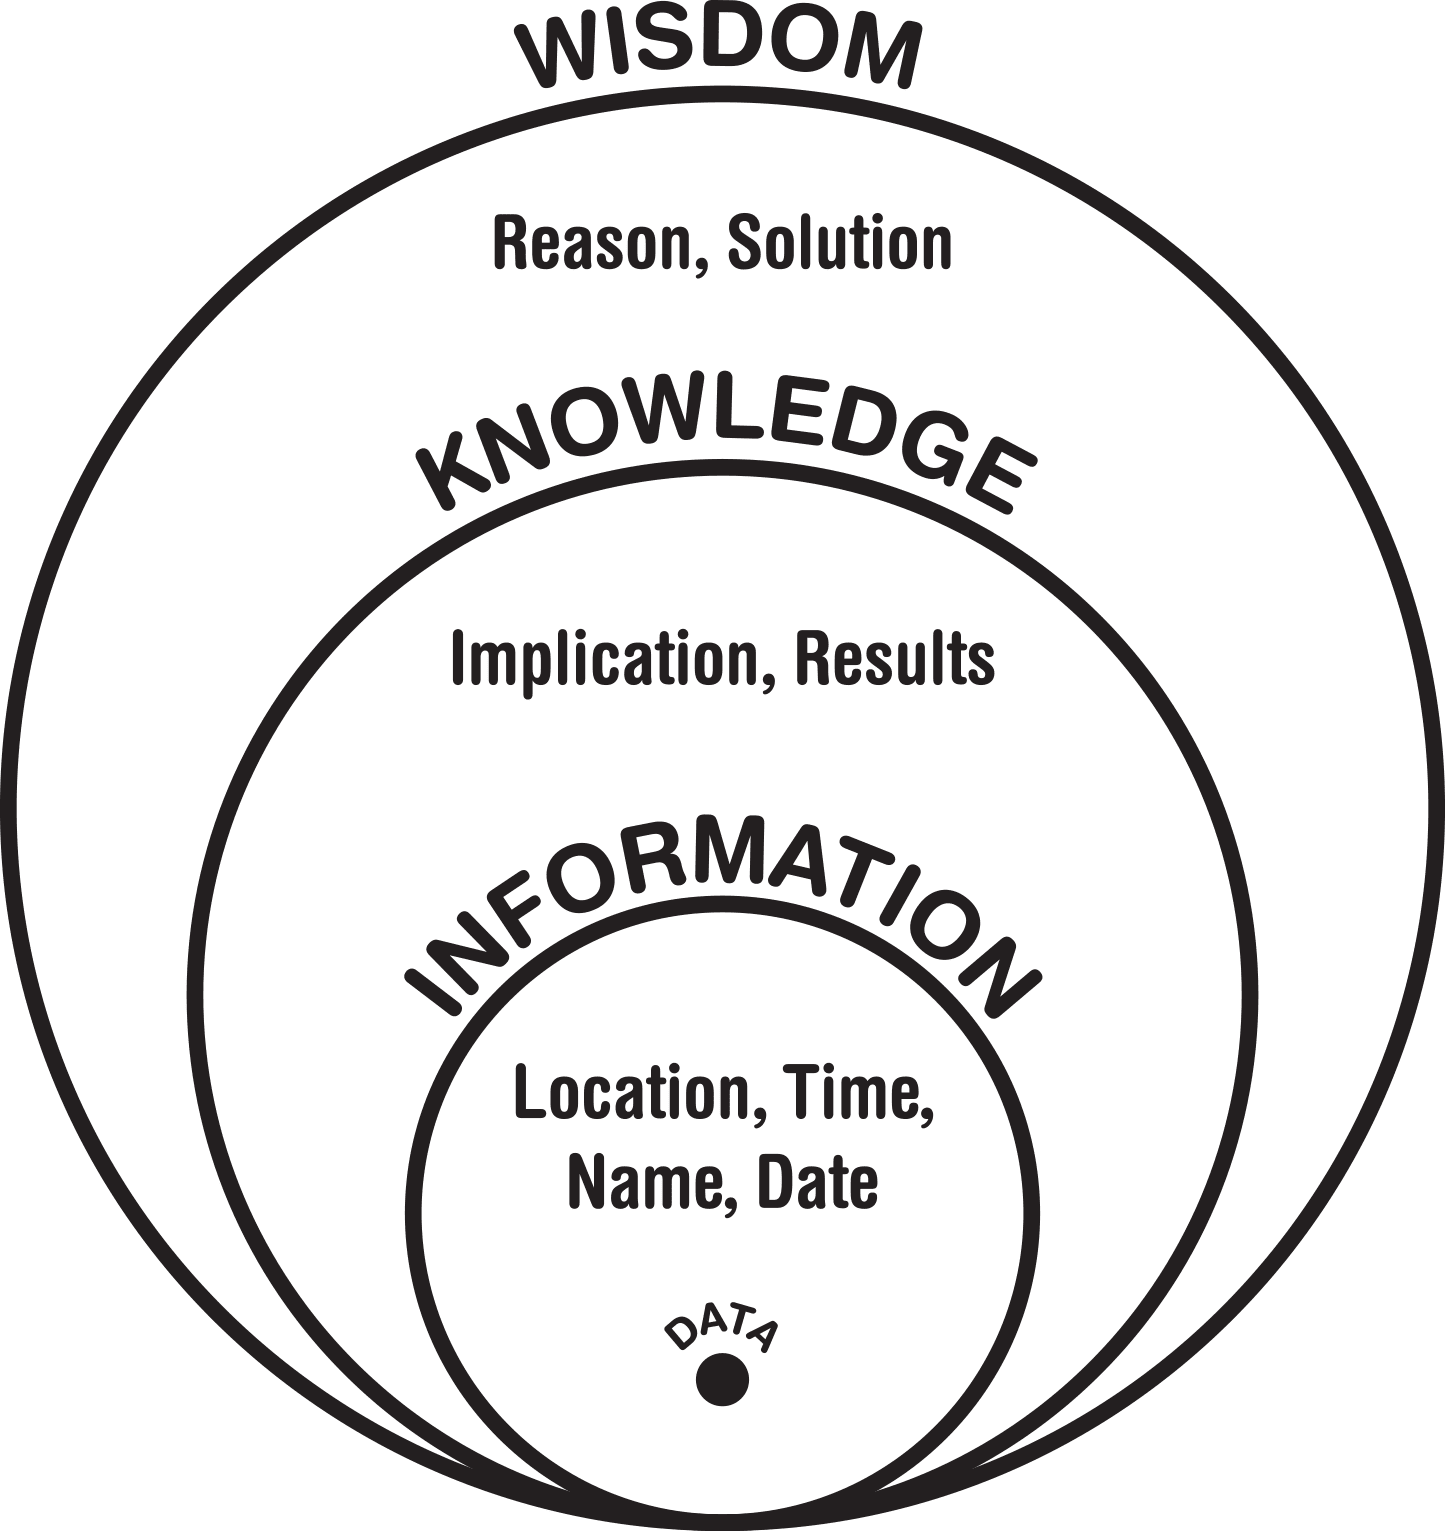 Wisdom, or the ability to turn data into solutions, is a key actor in results-oriented knowledge management. Before data can be turned into solutions however, it must undergo several rounds of inference, storage, and analysis.